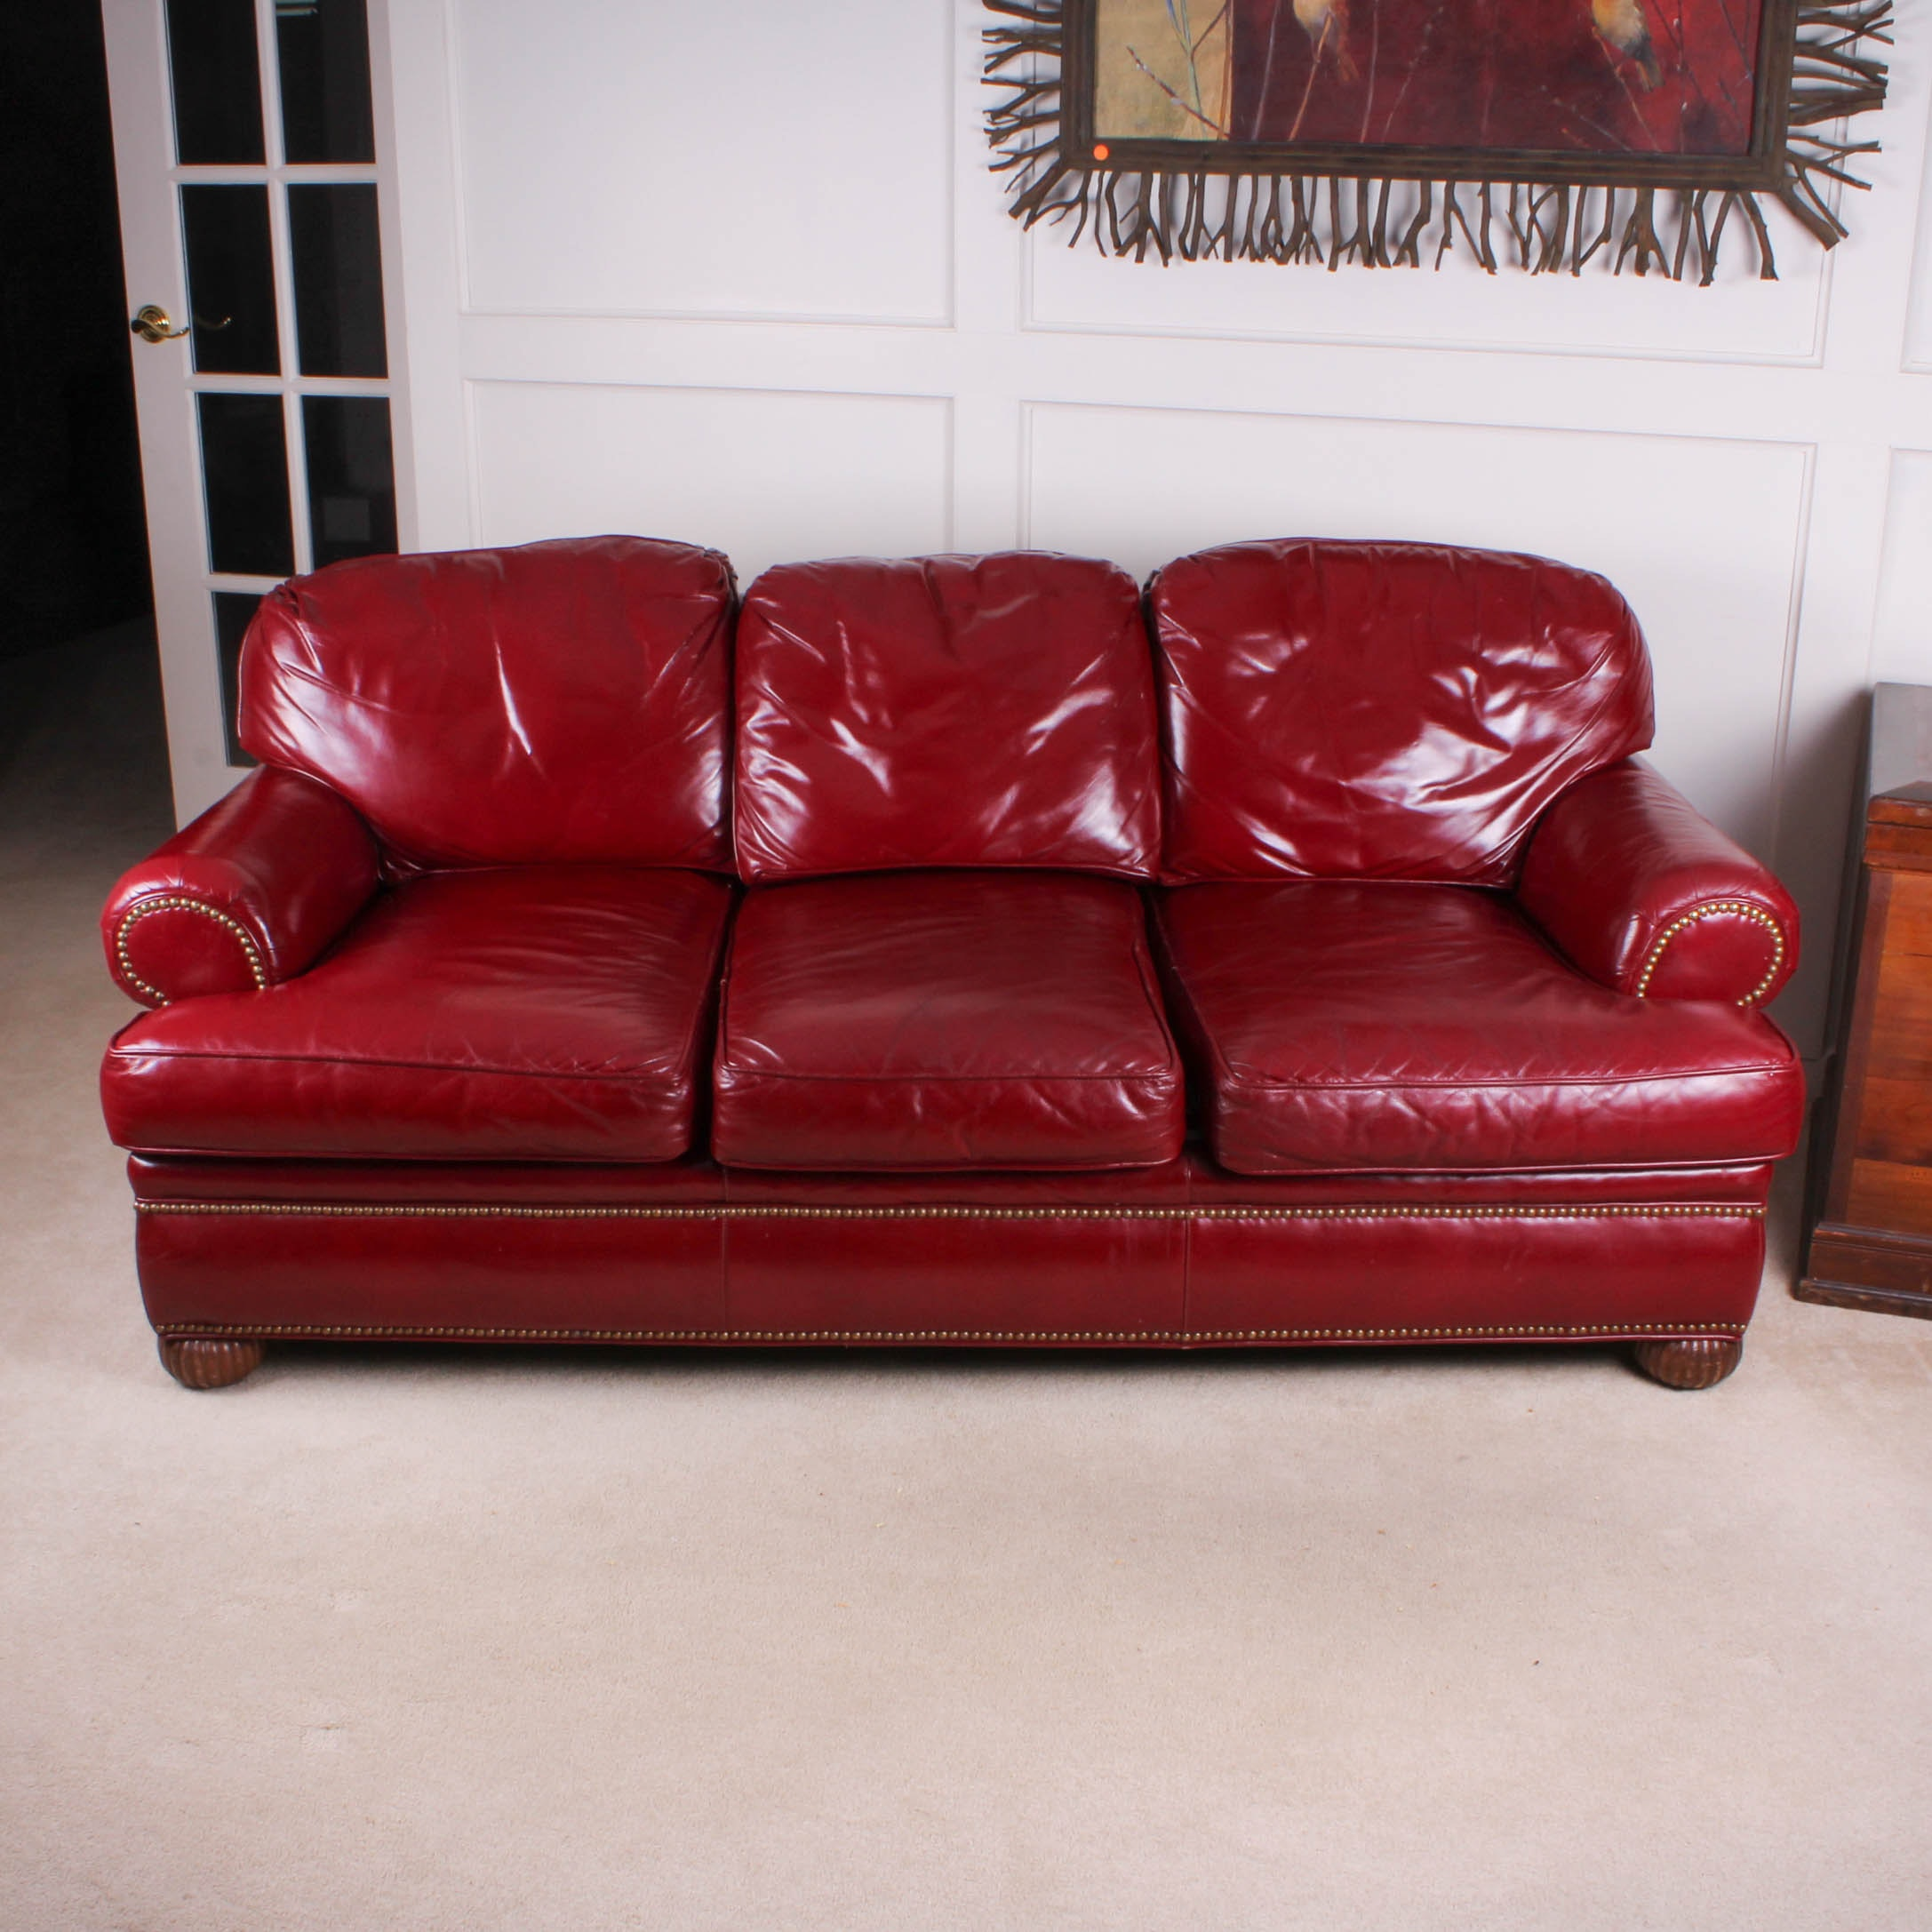 Traditional Red Leather Sofa By Pearson ...